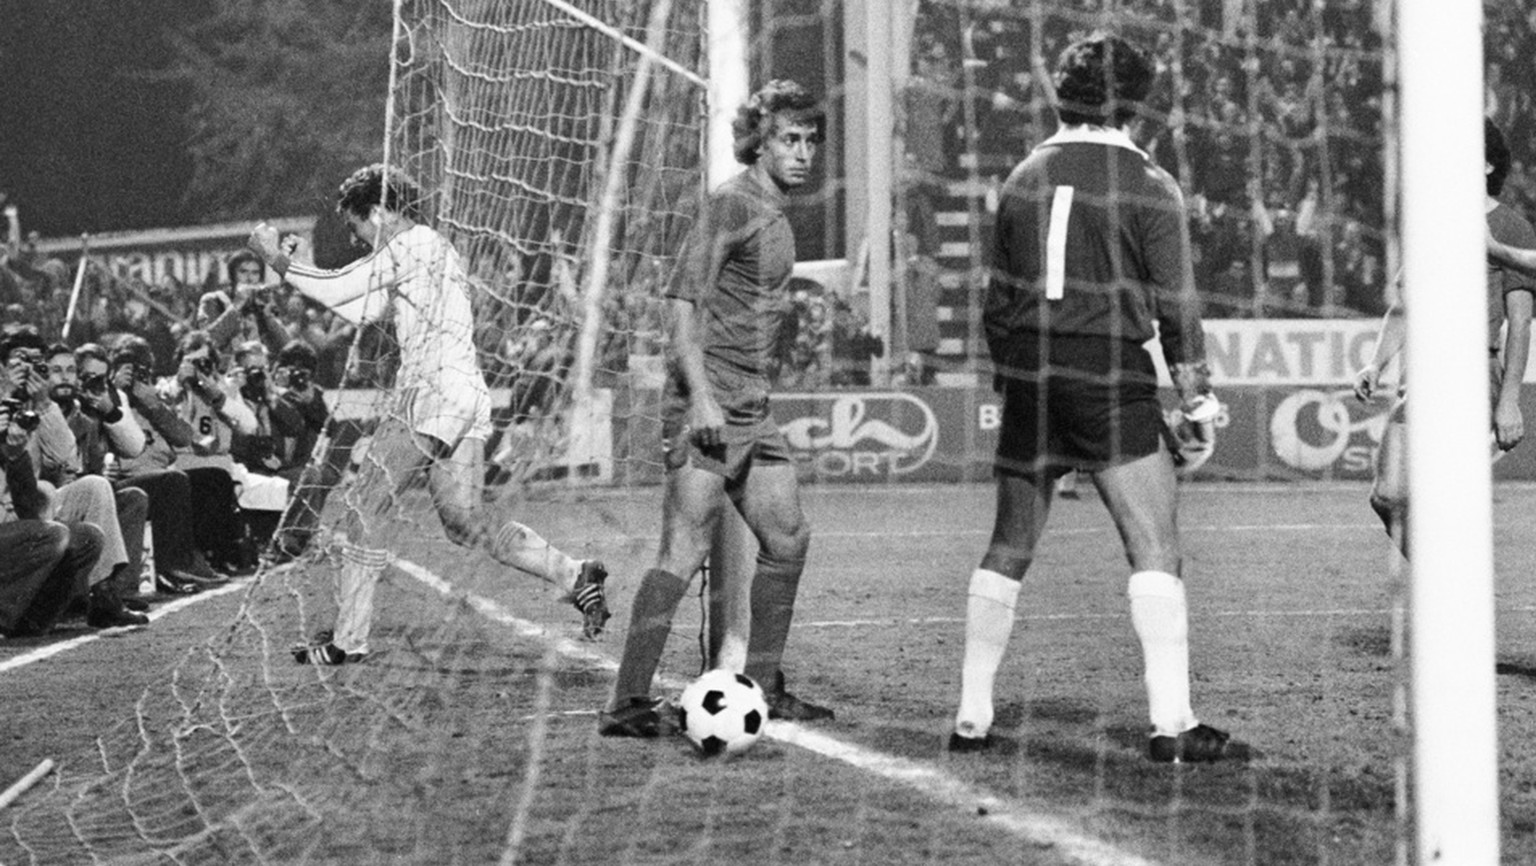 Goal celebrations by Grasshopper Club Zuerich soccer player Claudio Sulser (left) after he scored against Real Madrid during the champion's cup, last sixteen round between Grasshoppers and Real Madrid on November 1, 1978, at the Hardturm stadium in Zurich, Switzerland. GC won the match with 2-0 and moved on to the quarter finals. (KEYSTONE/PHOTOPRESS-ARCHIV/Str)  Torjubel von GC Spieler Claudio Sulser, links, nach seinem Tor gegen Real Madrid, beim Meistercup Achtelfinalspiel zwischen den Grasshoppers und Real Madrid, am 1. November 1978 im Stadion Hardturm in Zuerich. GC gewann die Partie mit 2 - 0 und zog in den Viertelfinal ein. (KEYSTONE/PHOTOPRESS-ARCHIV/Str)